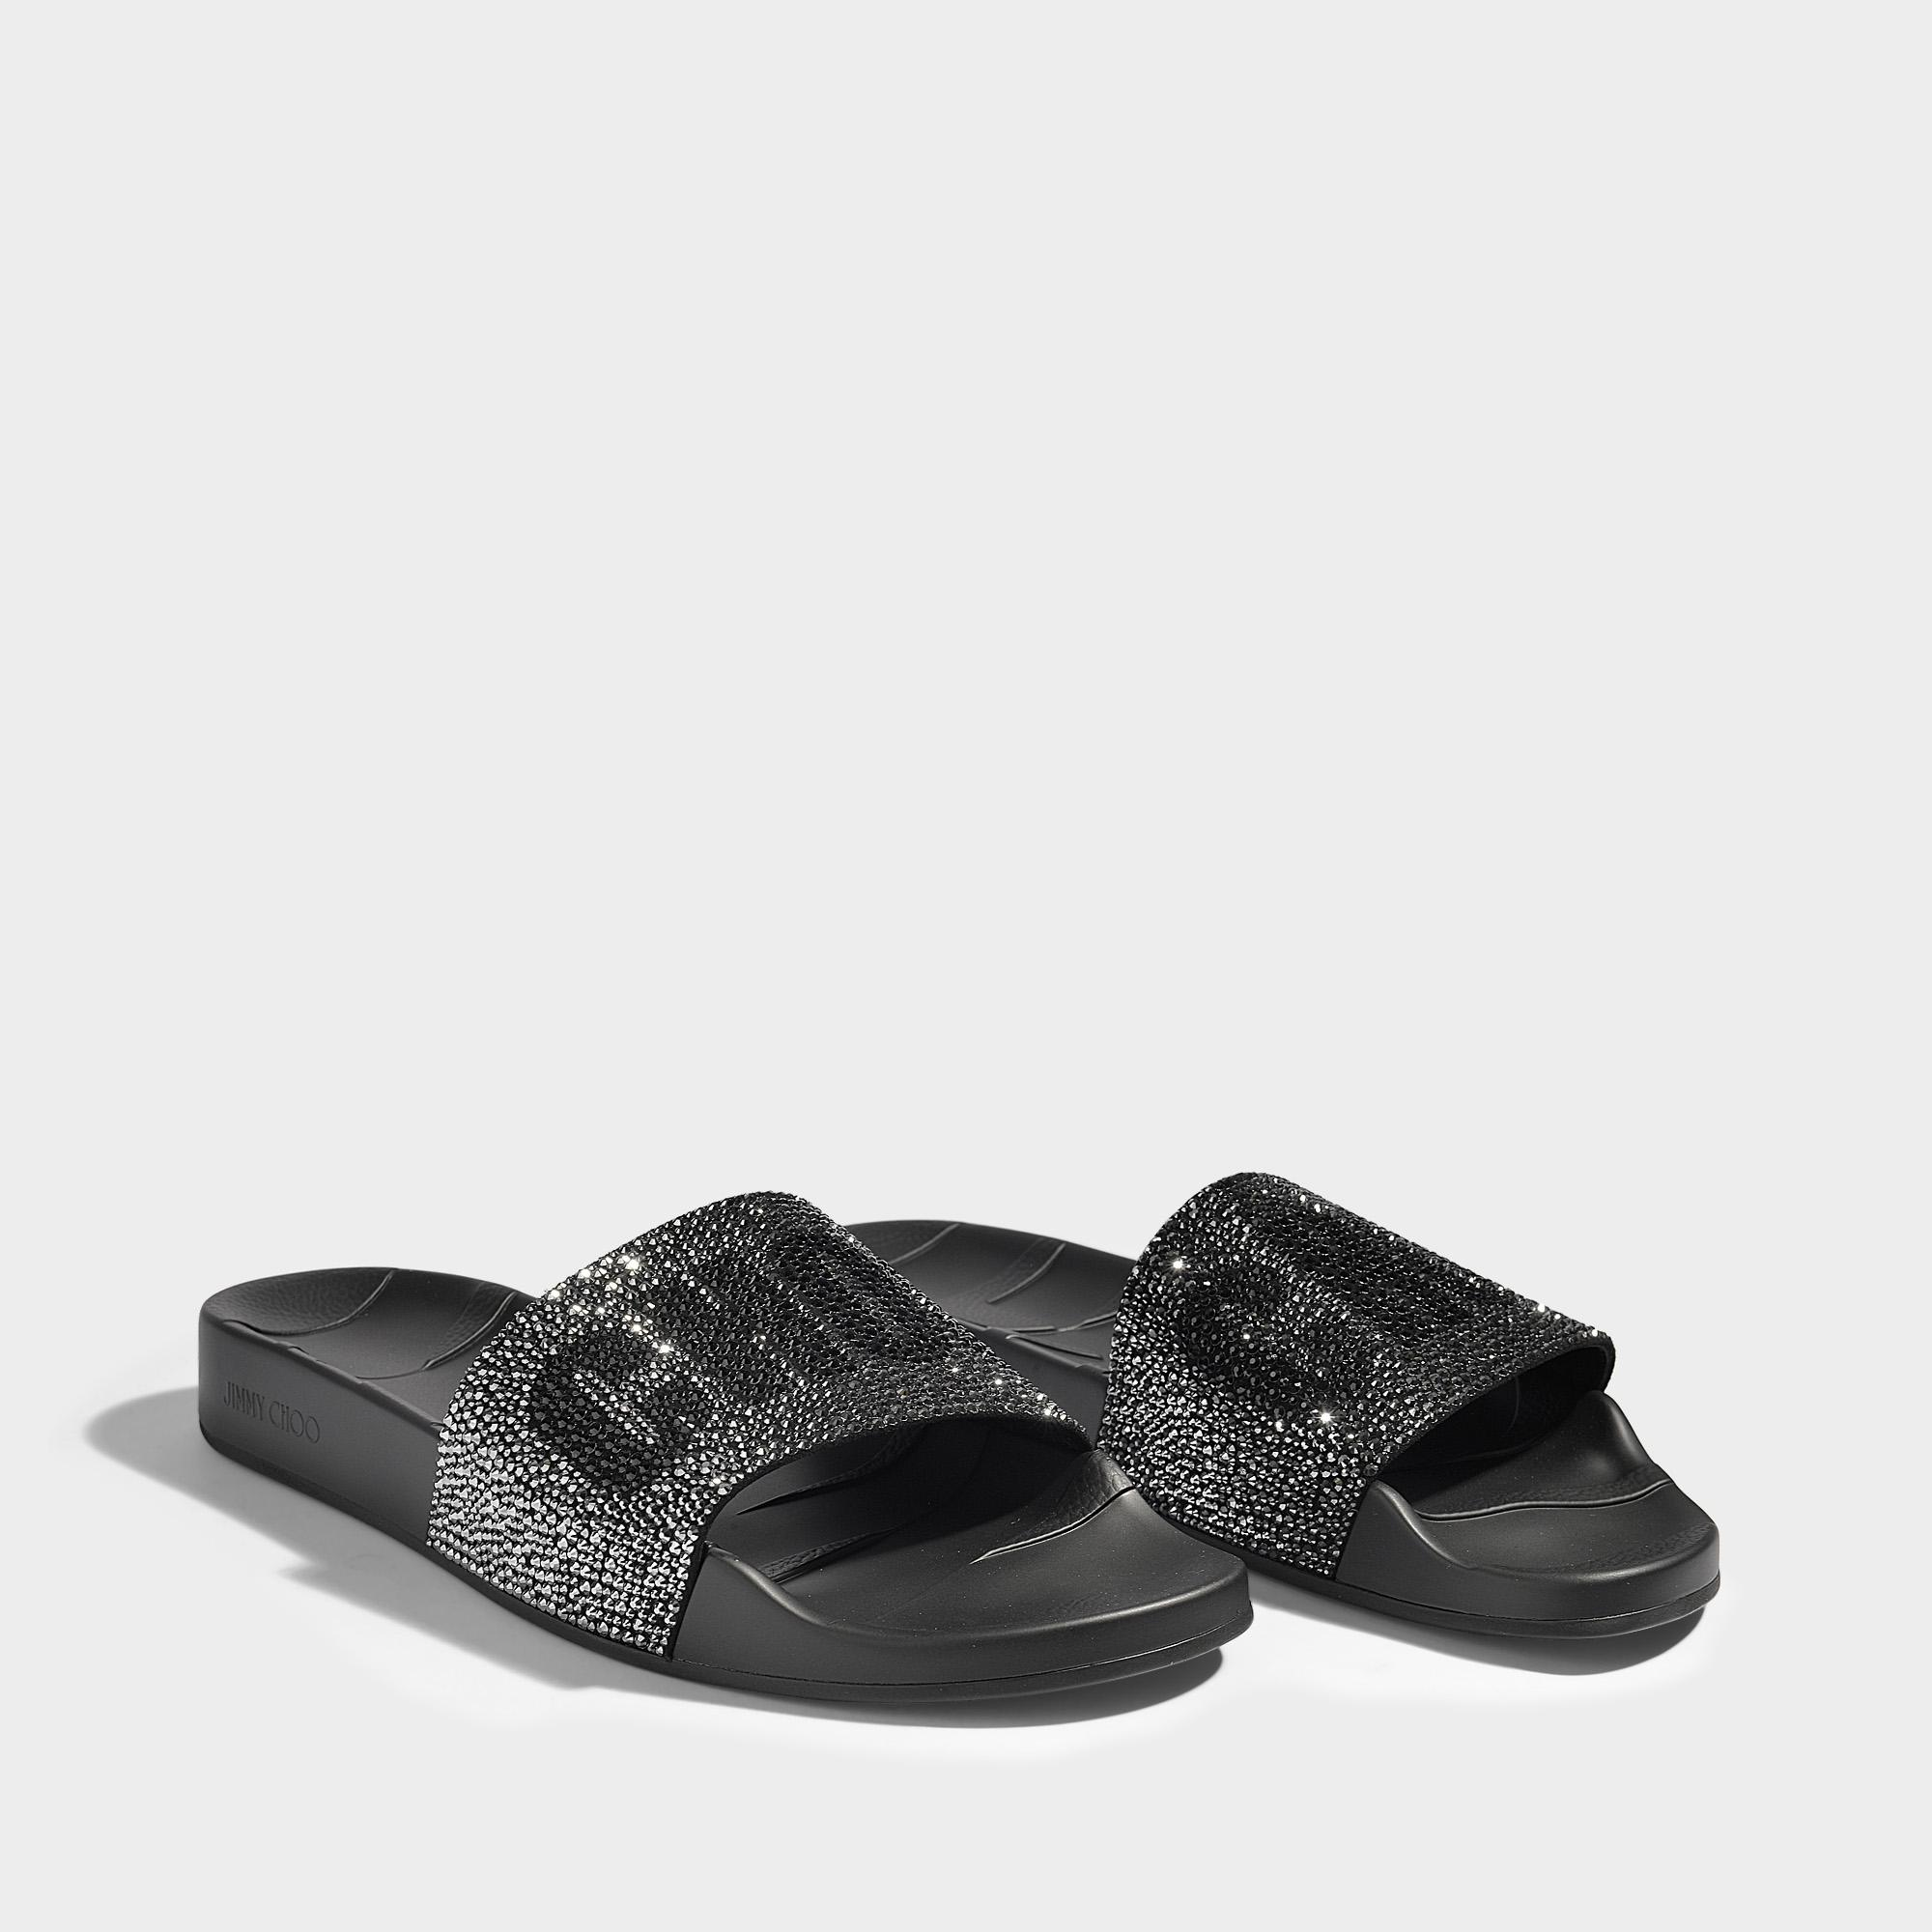 c66254db1bb9 Lyst - Jimmy Choo Rey Crystal Poolslides In Black Rubber And ...